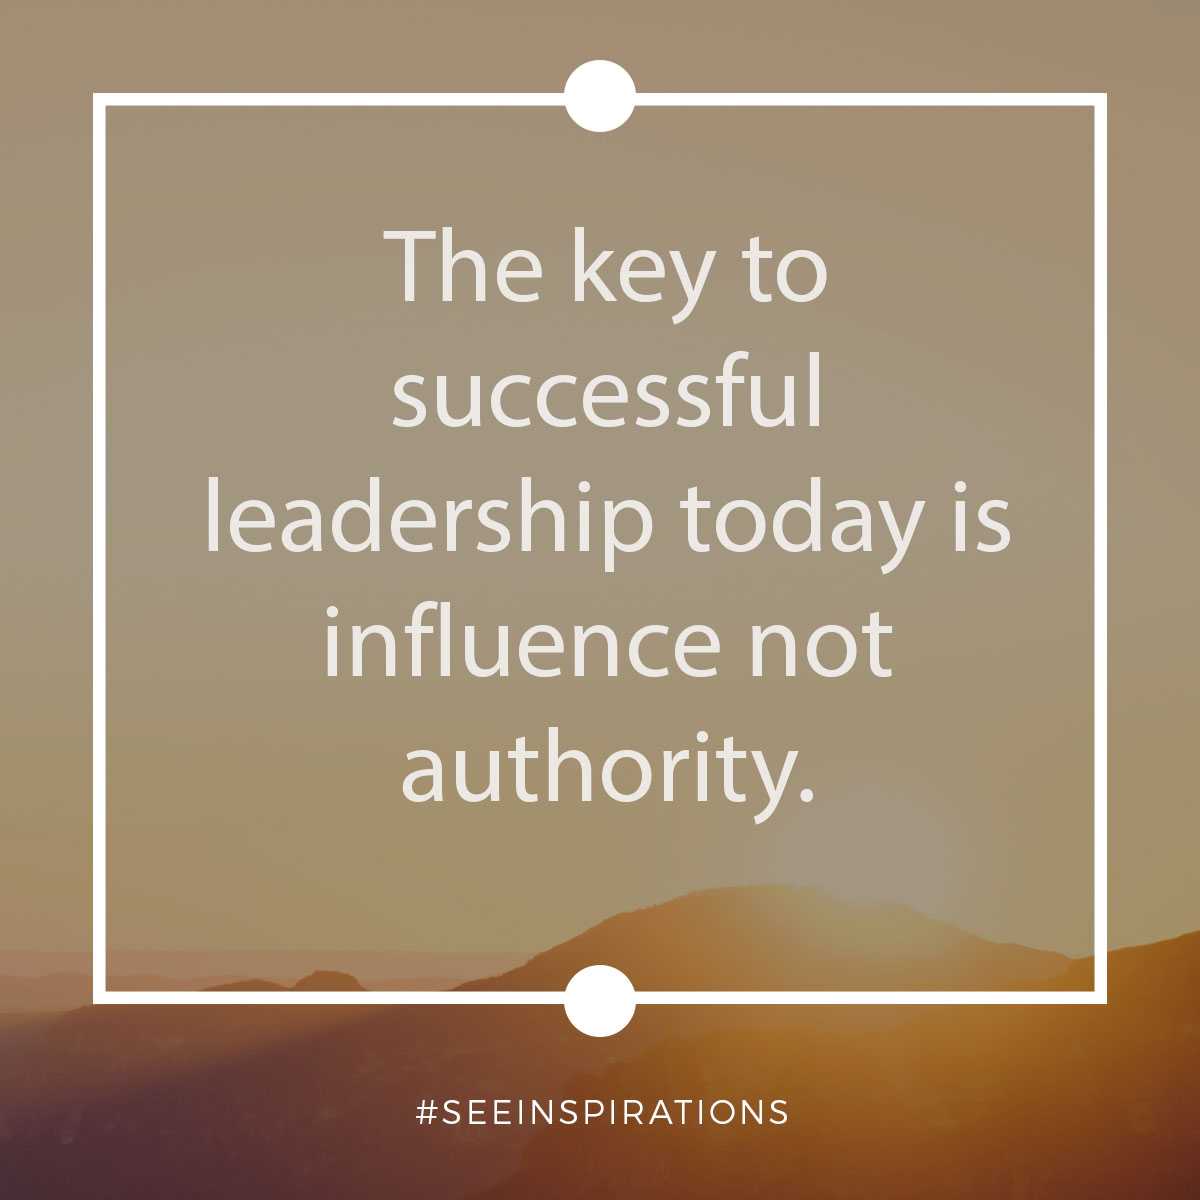 The key to successful leadership today is influence not authority